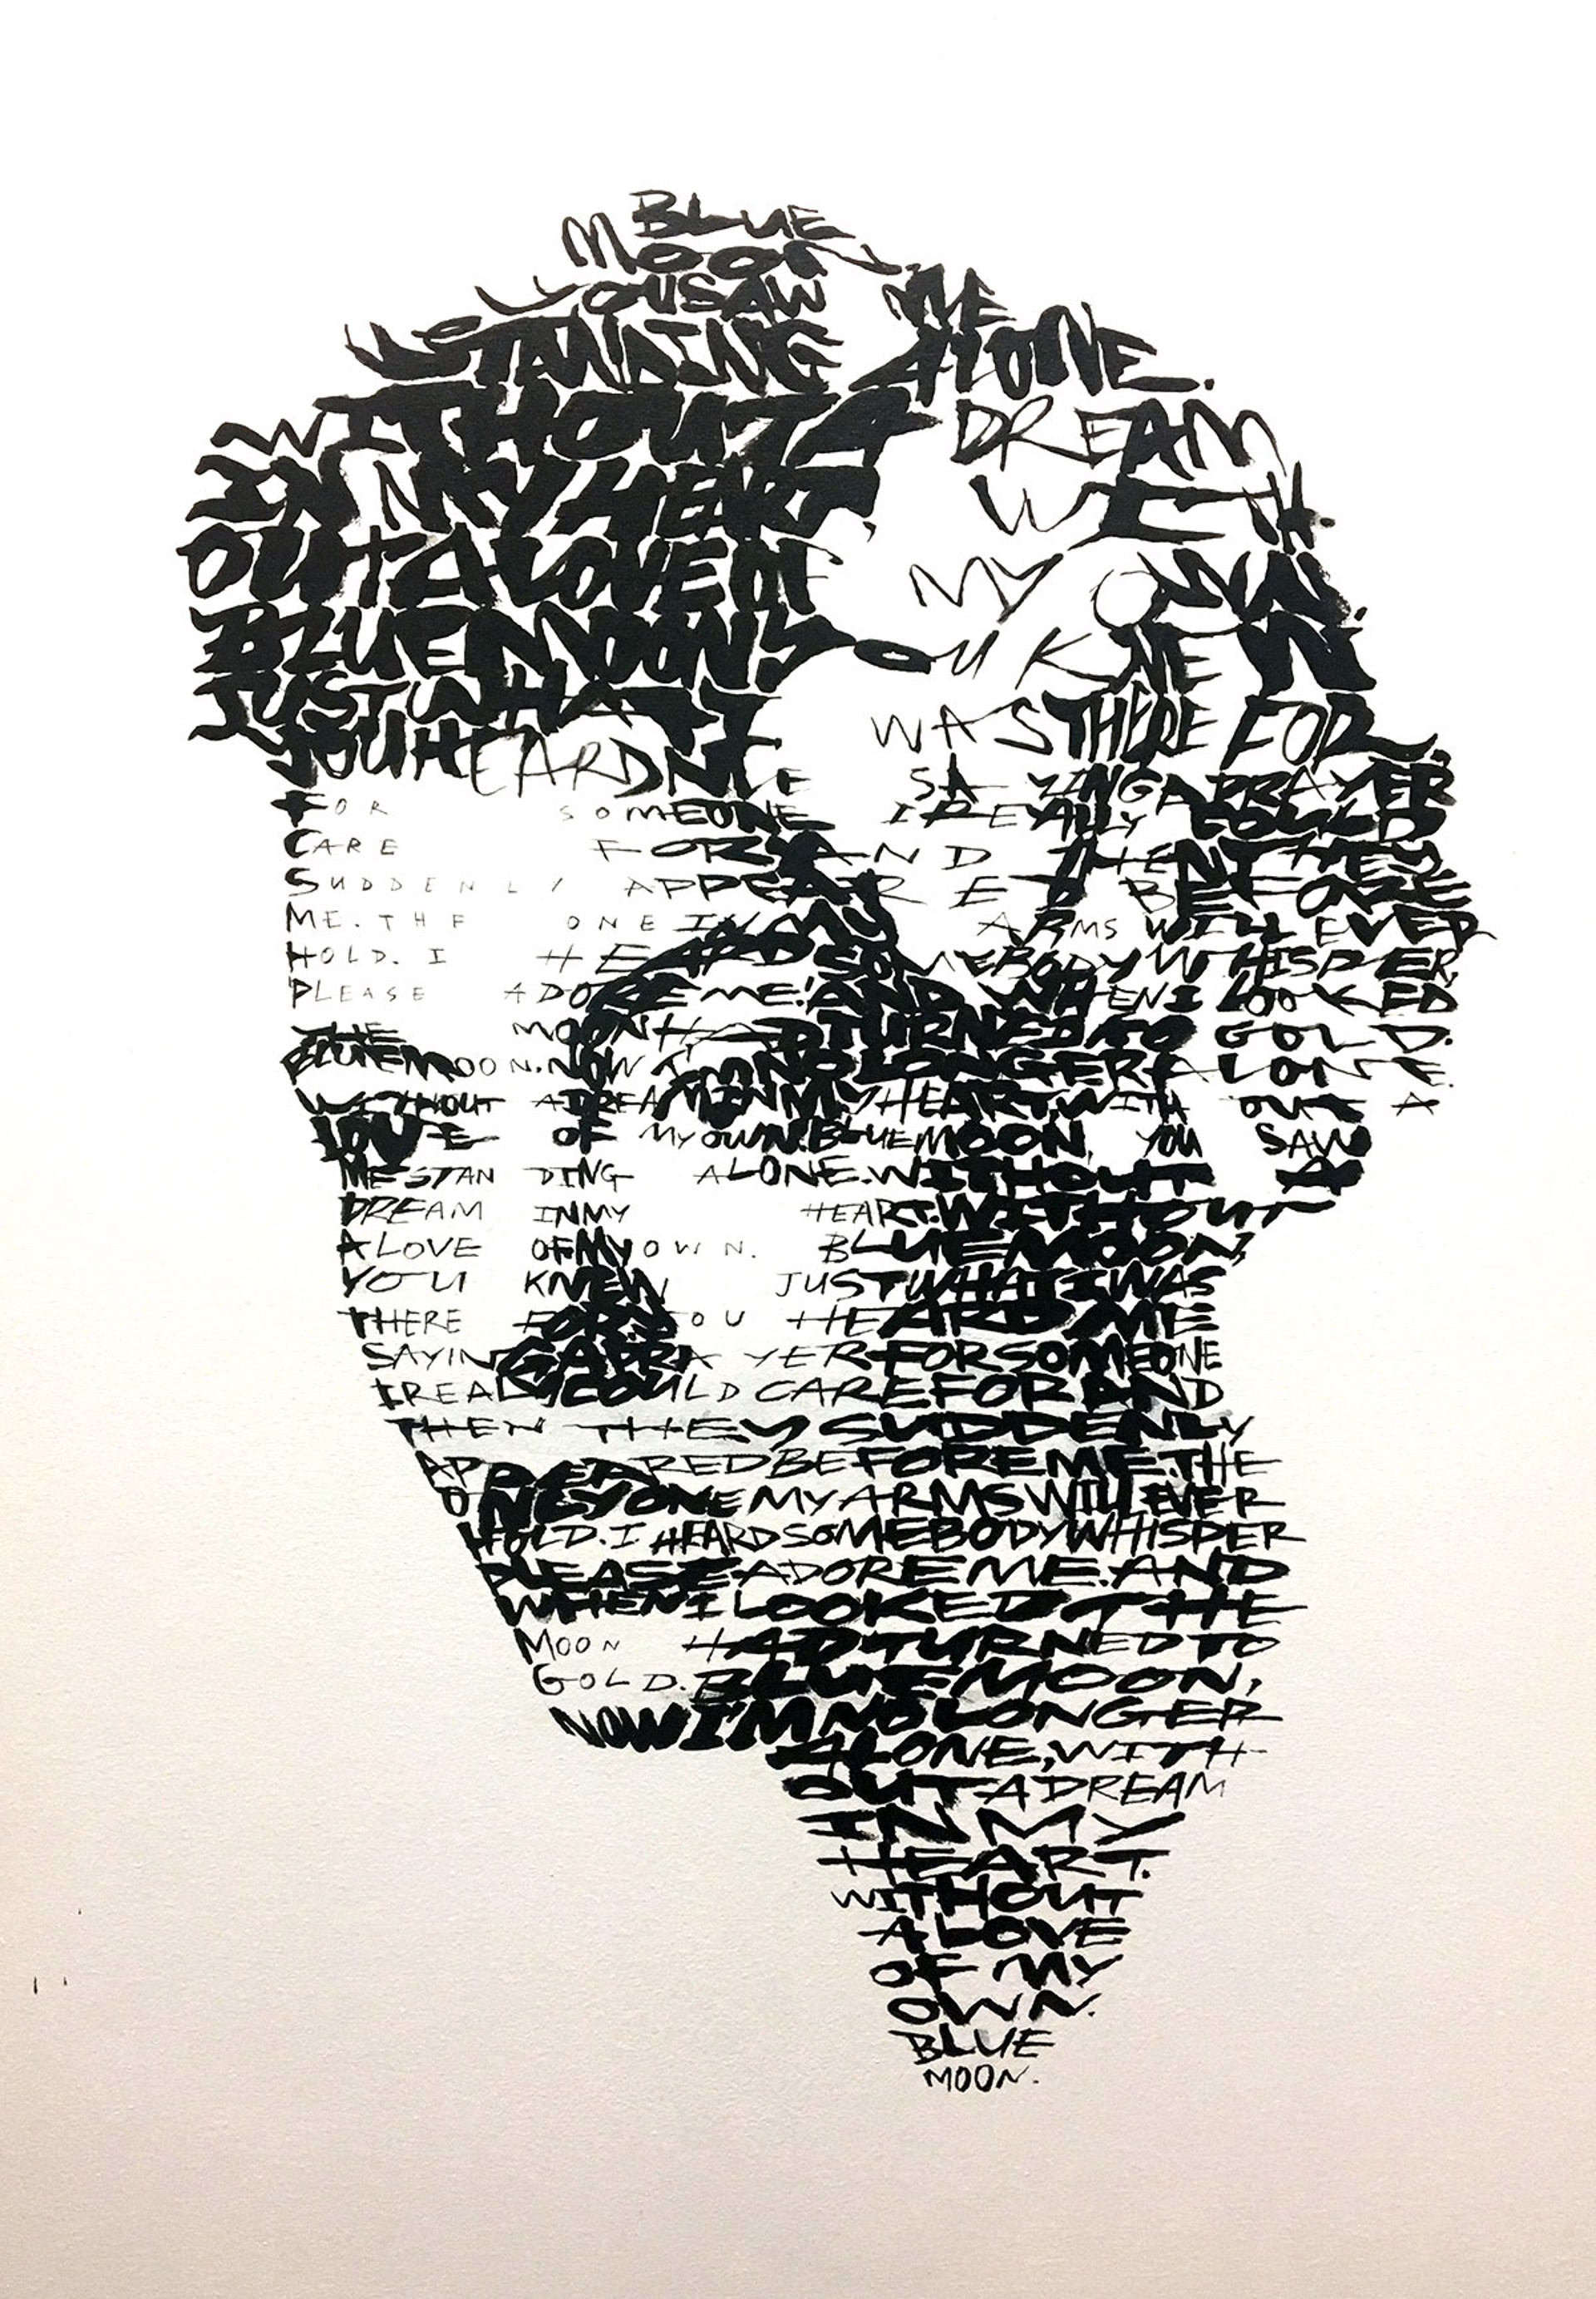 Billie Holiday (Text: Blue Moon by Richard Rogers and Lorenz Hart 1934) by David Hollier